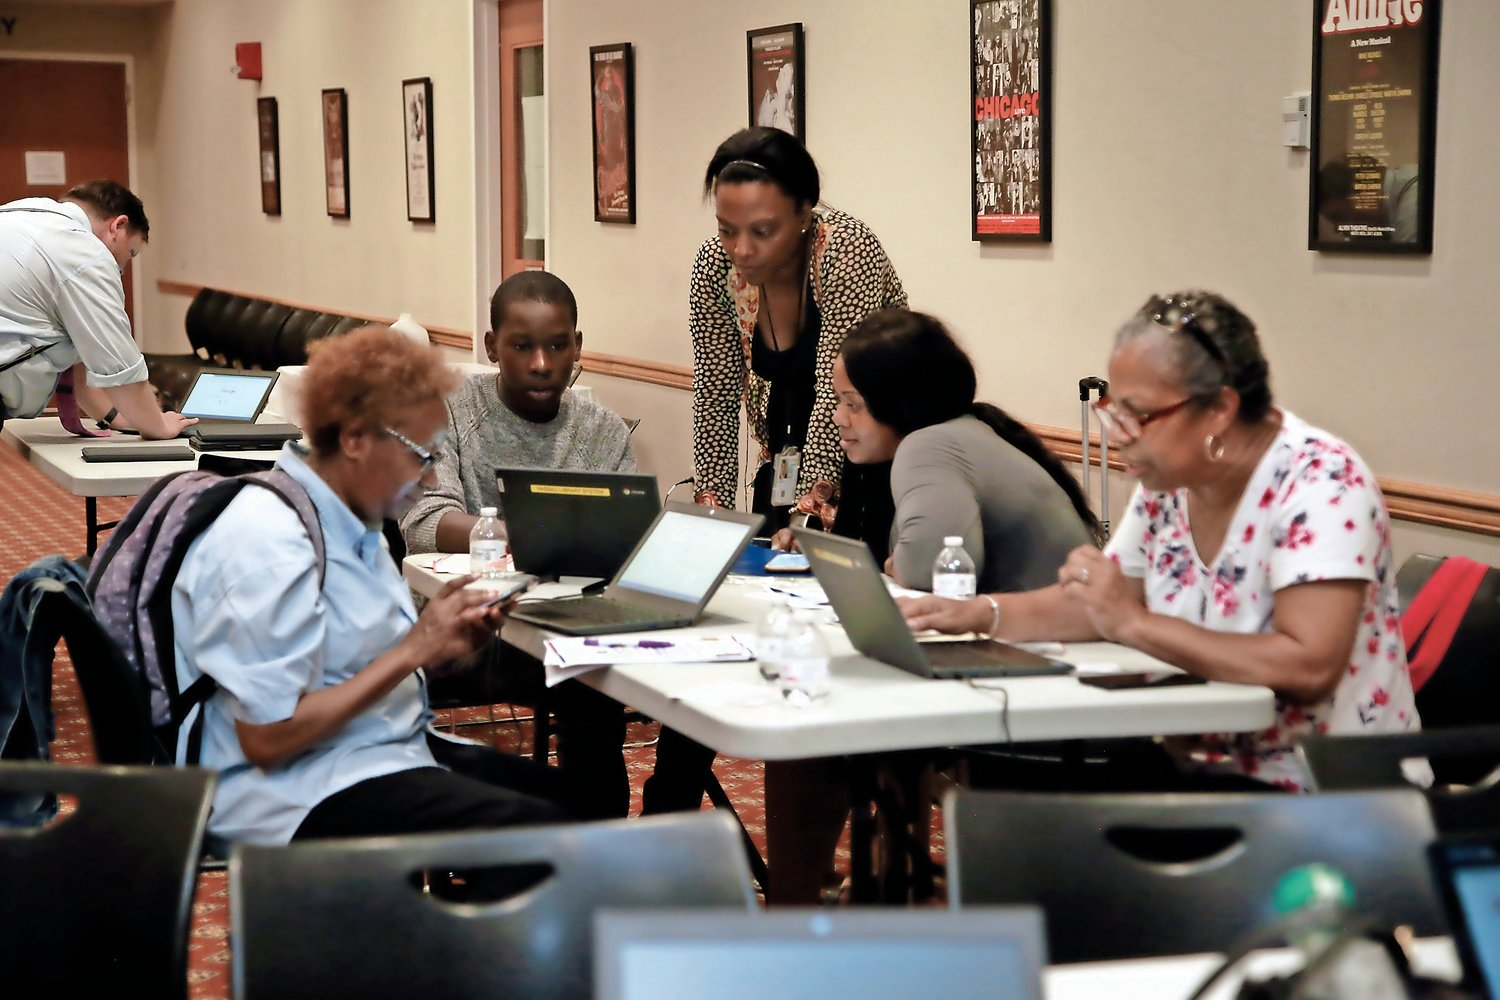 Monique Powell, center, a partnership specialist for the New York Regional Census Center, helped residents fill out job applications for Census enumerators at the Elmont Memorial Library on July 30.